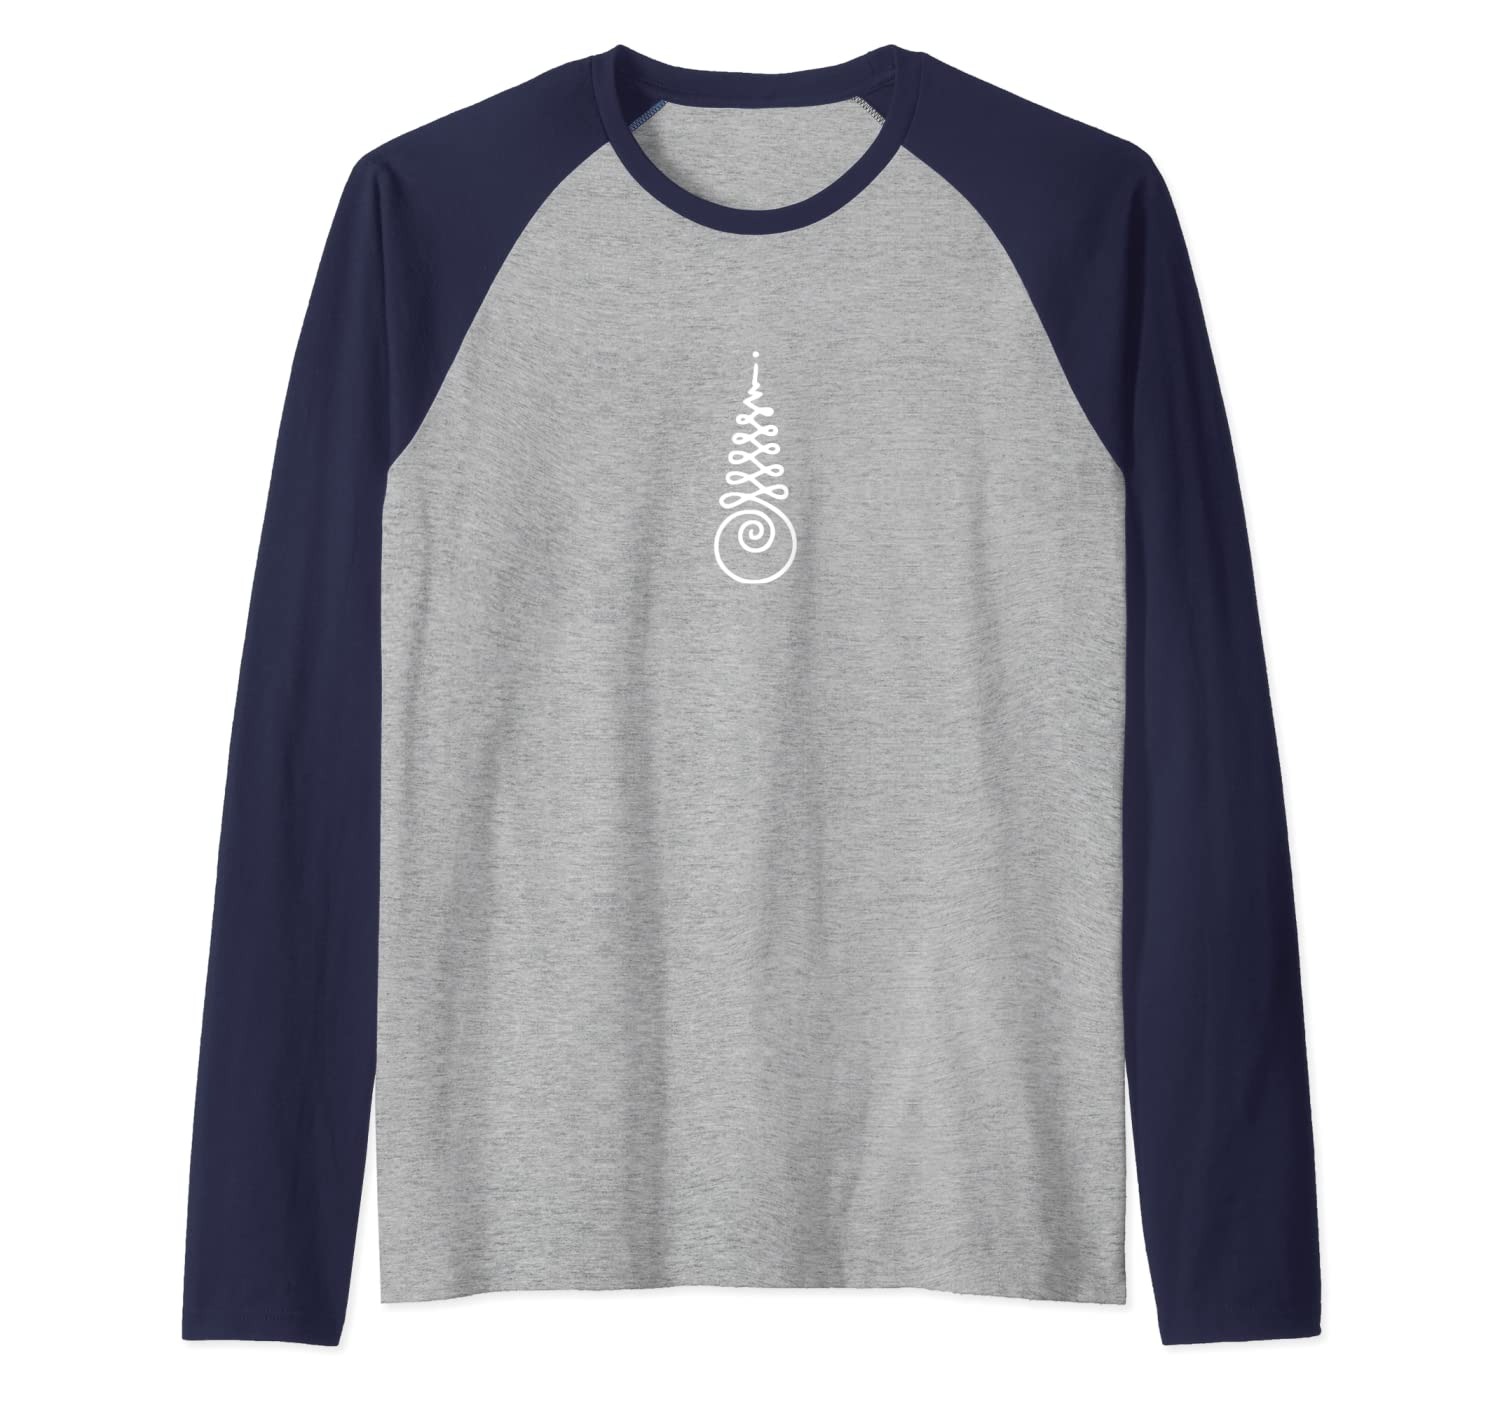 Amazon.com: unalome lotus flower bodhi yoga meditation shirt ...